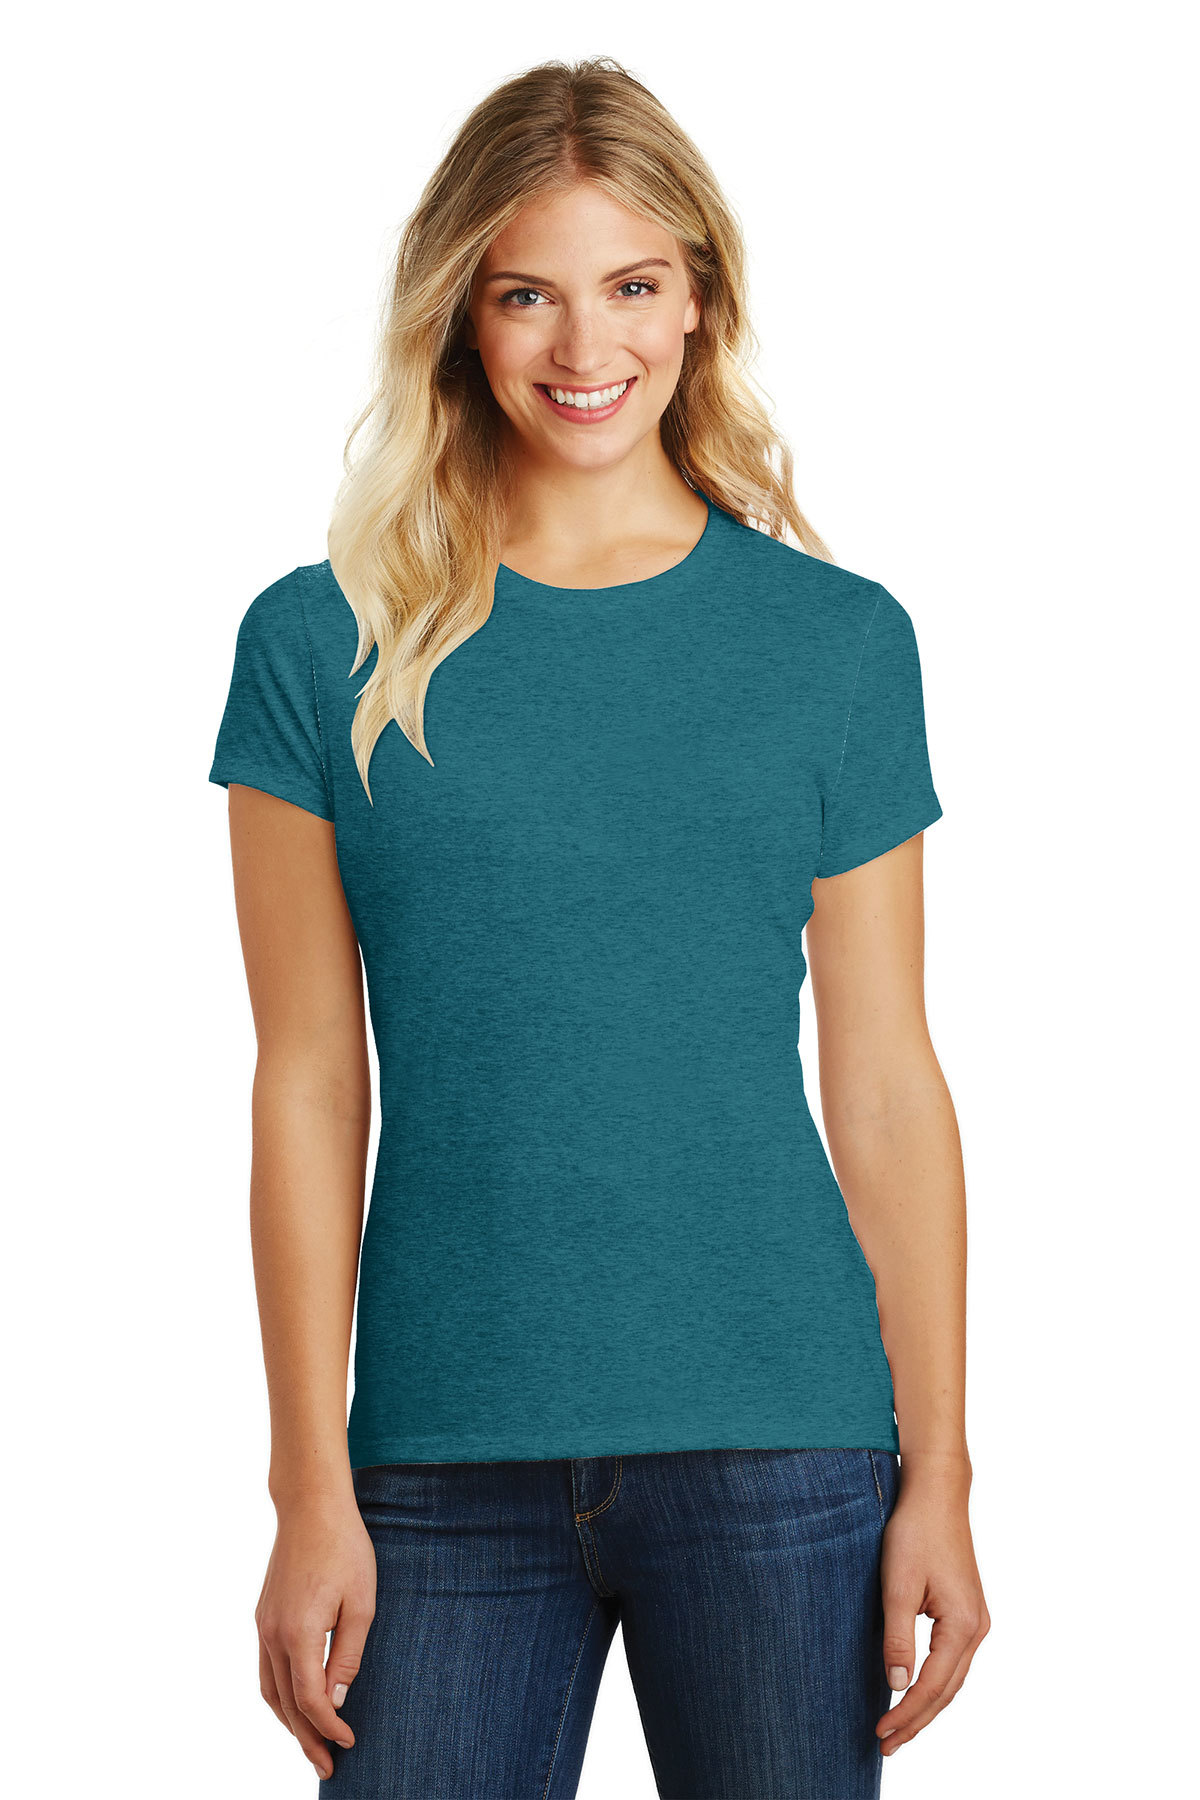 District Made DM108L Ladies Perfect Blend Crew Tee